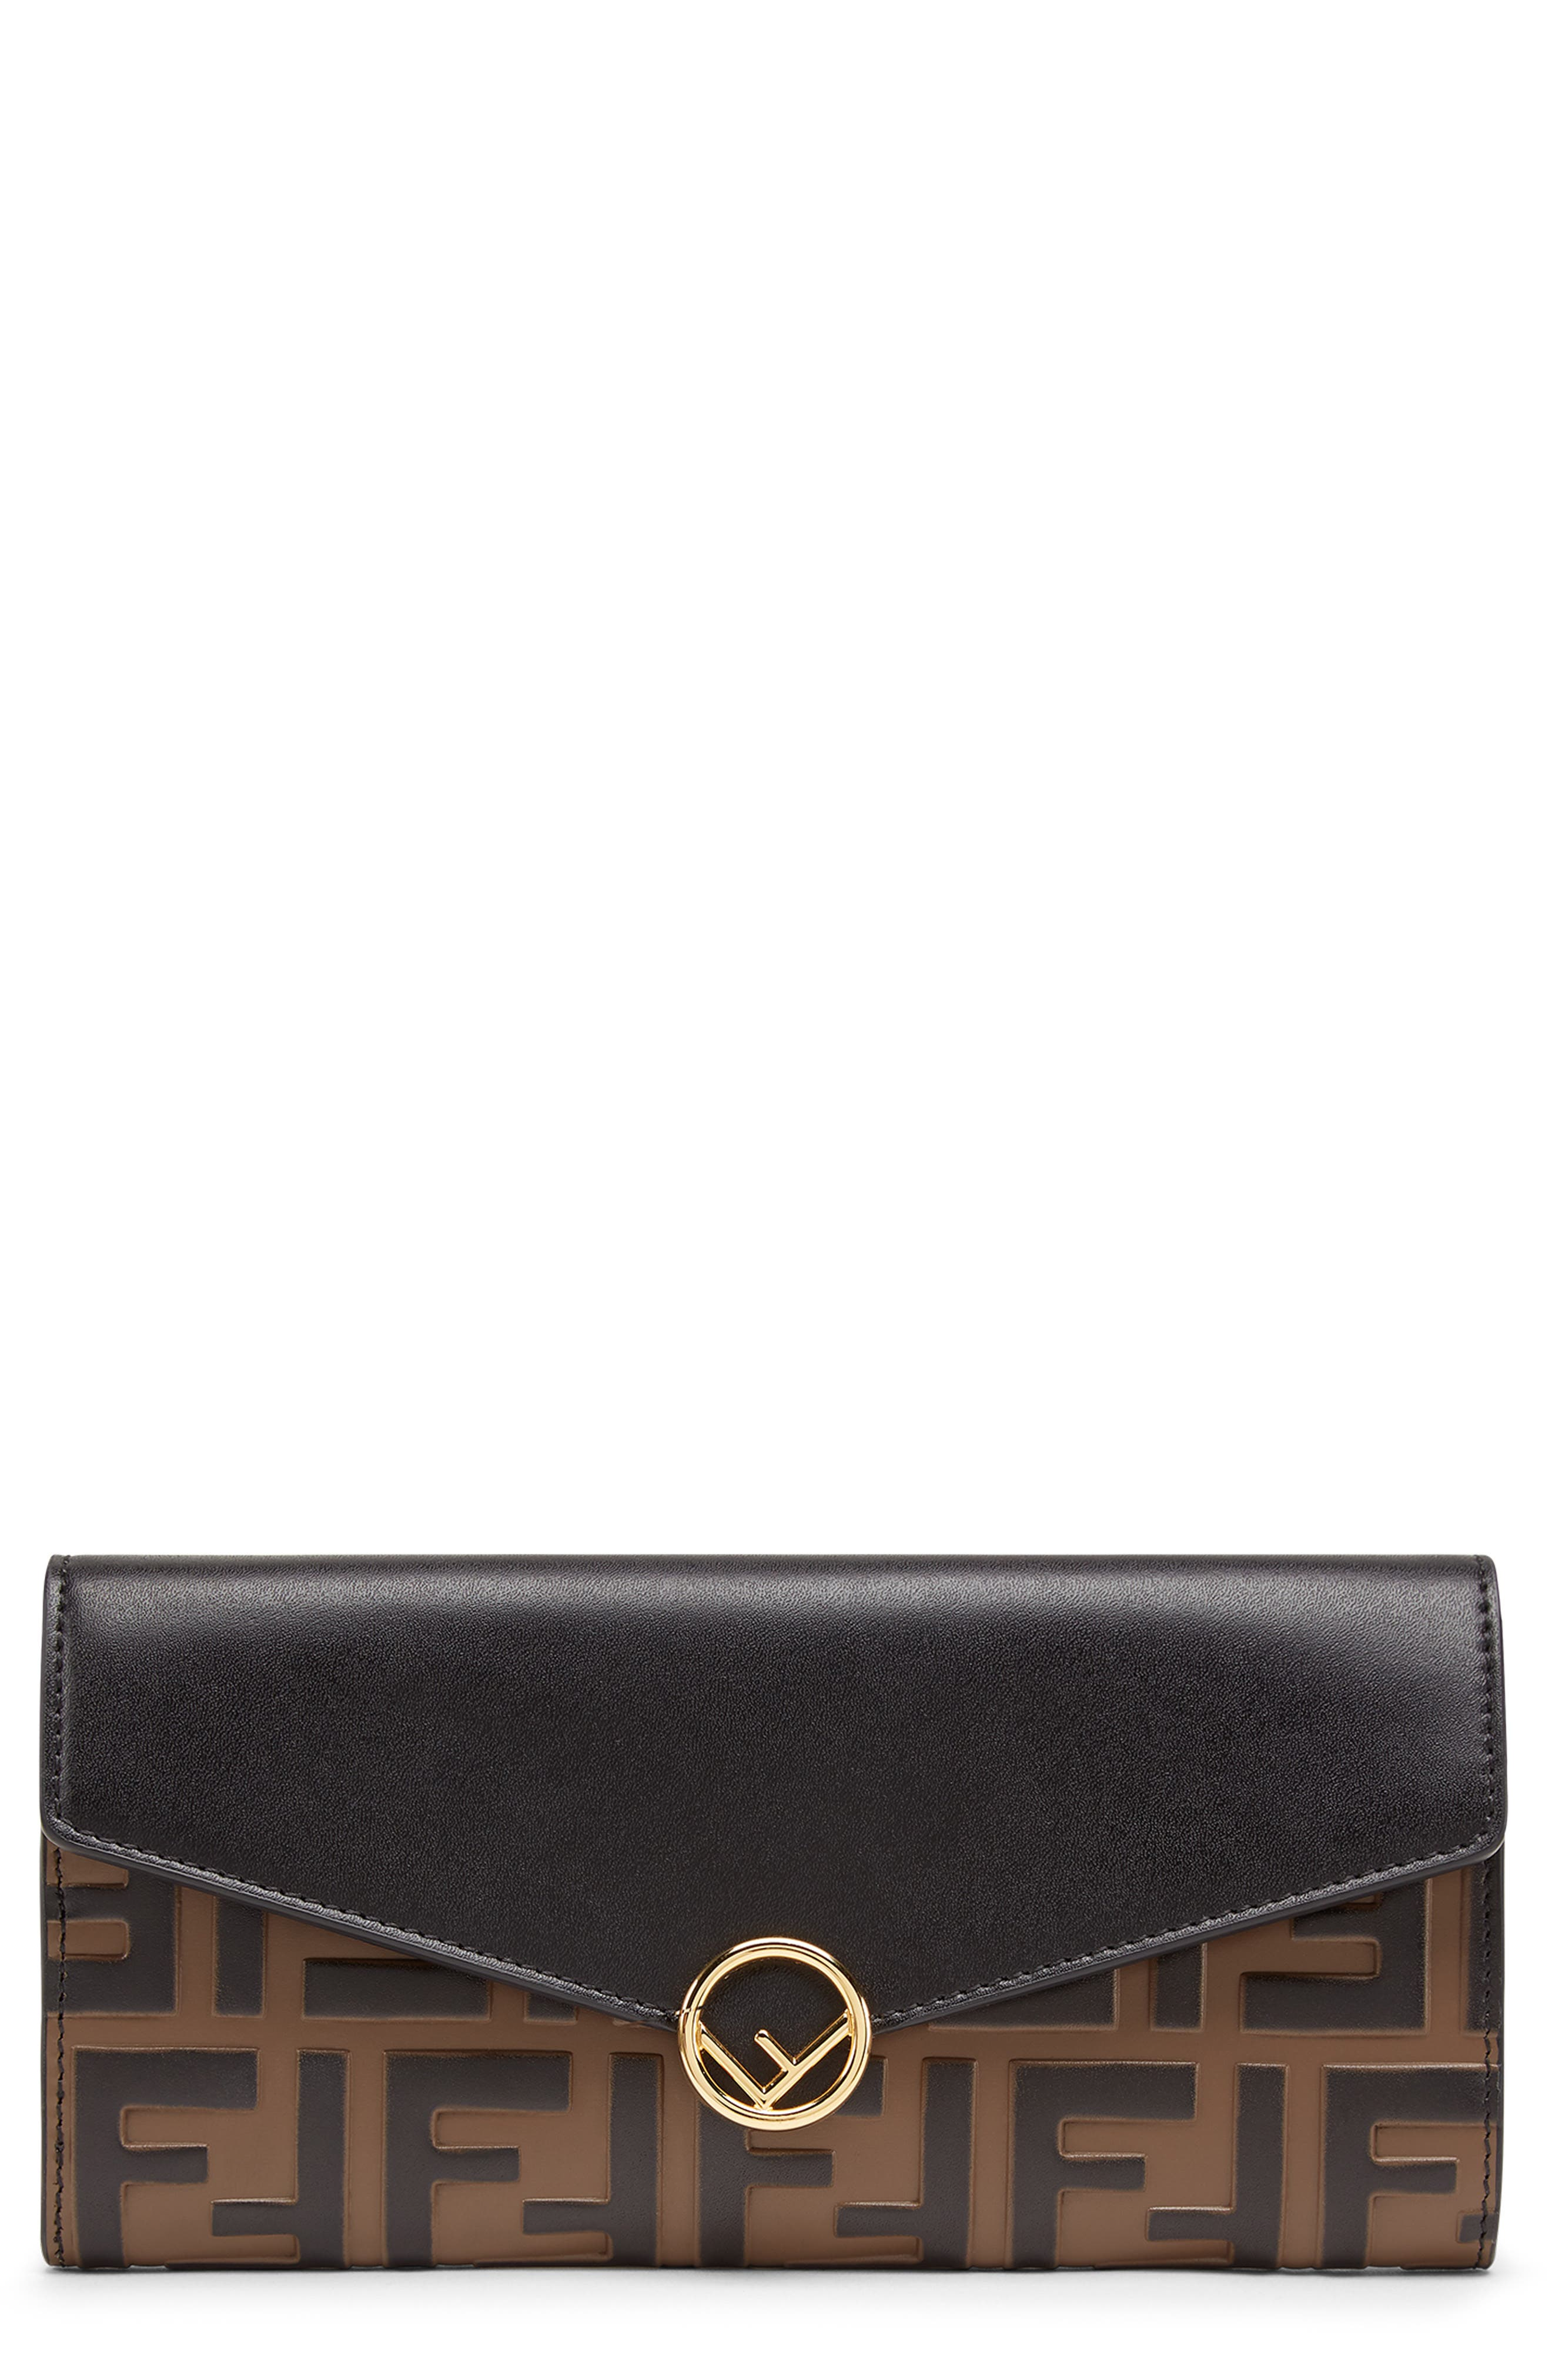 FENDI,                             Logo Calfskin Leather Continental Wallet,                             Main thumbnail 1, color,                             NERO/ MAYA